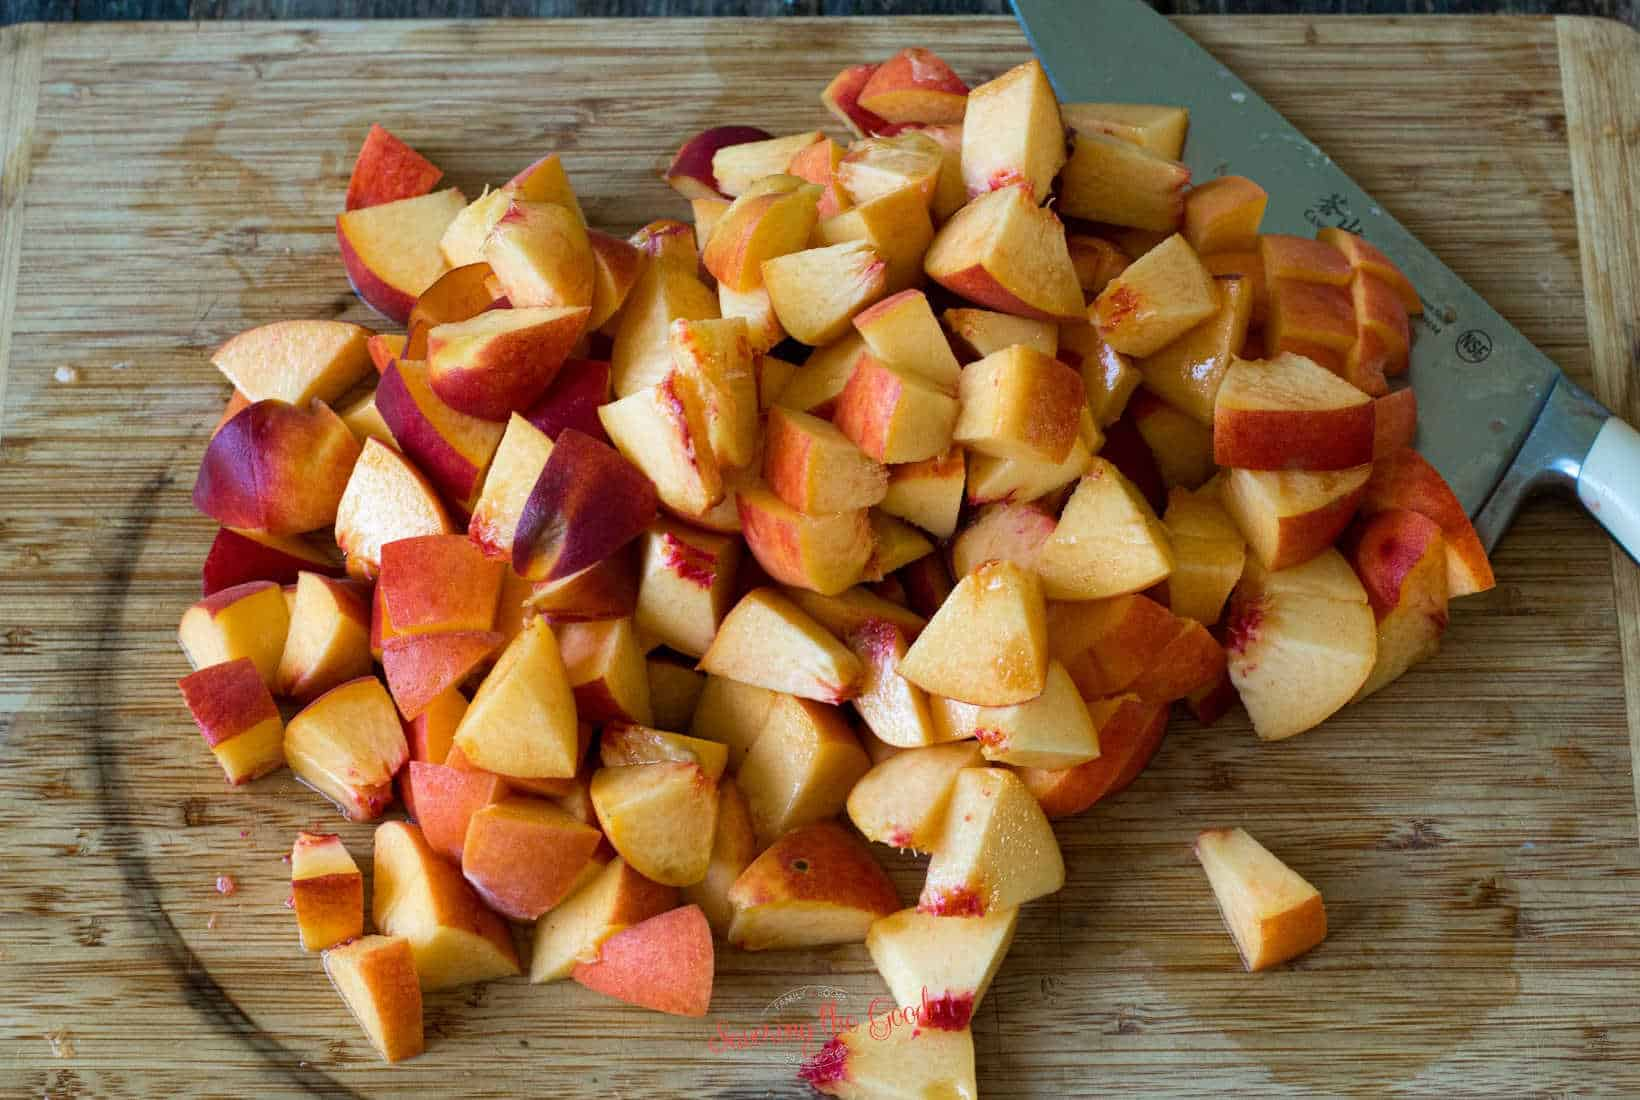 chopped peach with the skin still on them on a bamboo cutting board